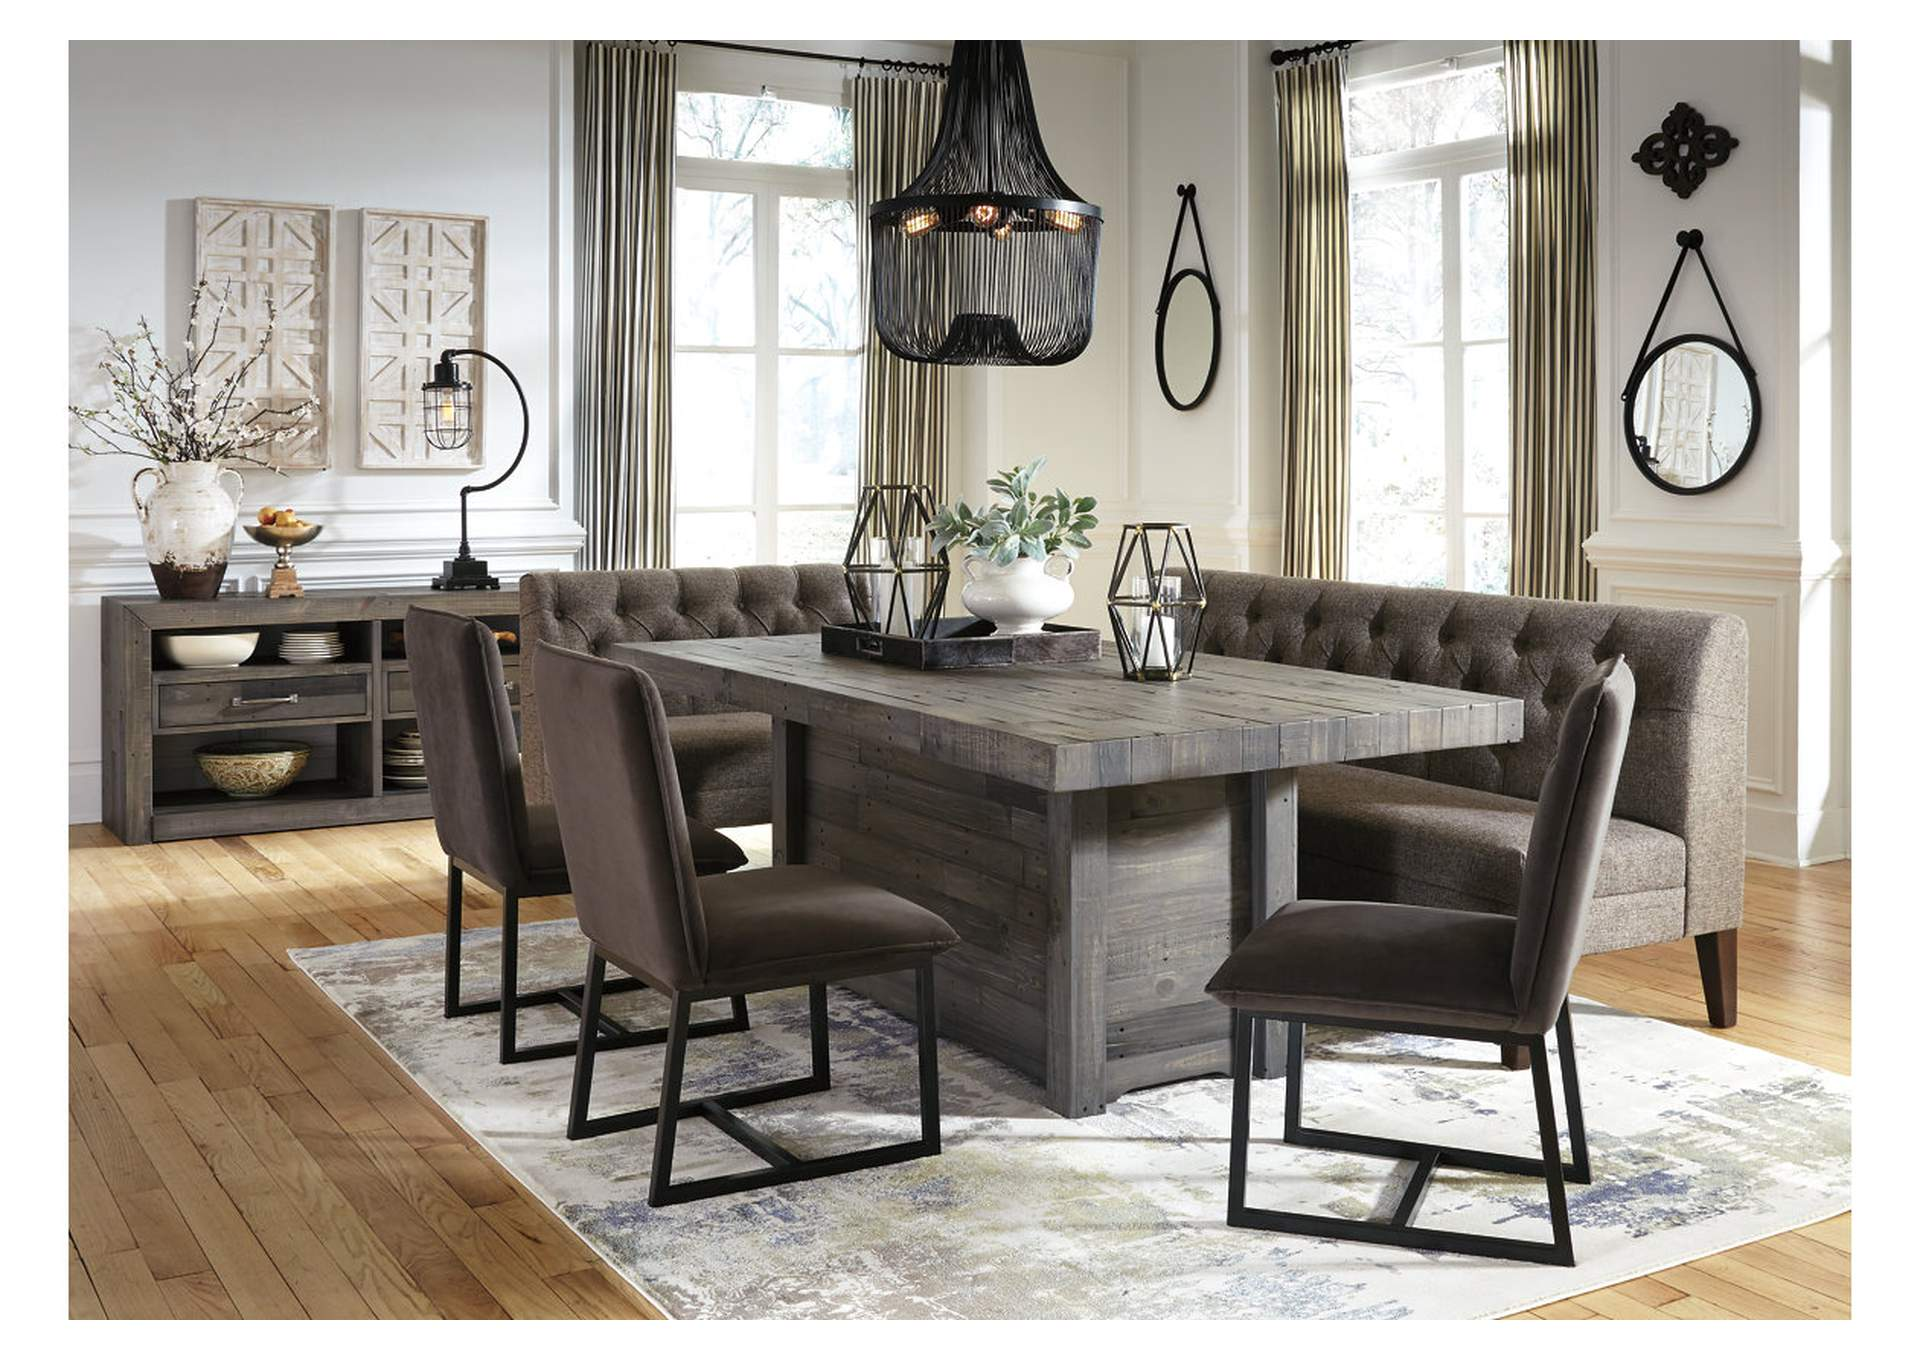 Extra Large Upholstered Dining Room Bench,Signature Design By Ashley